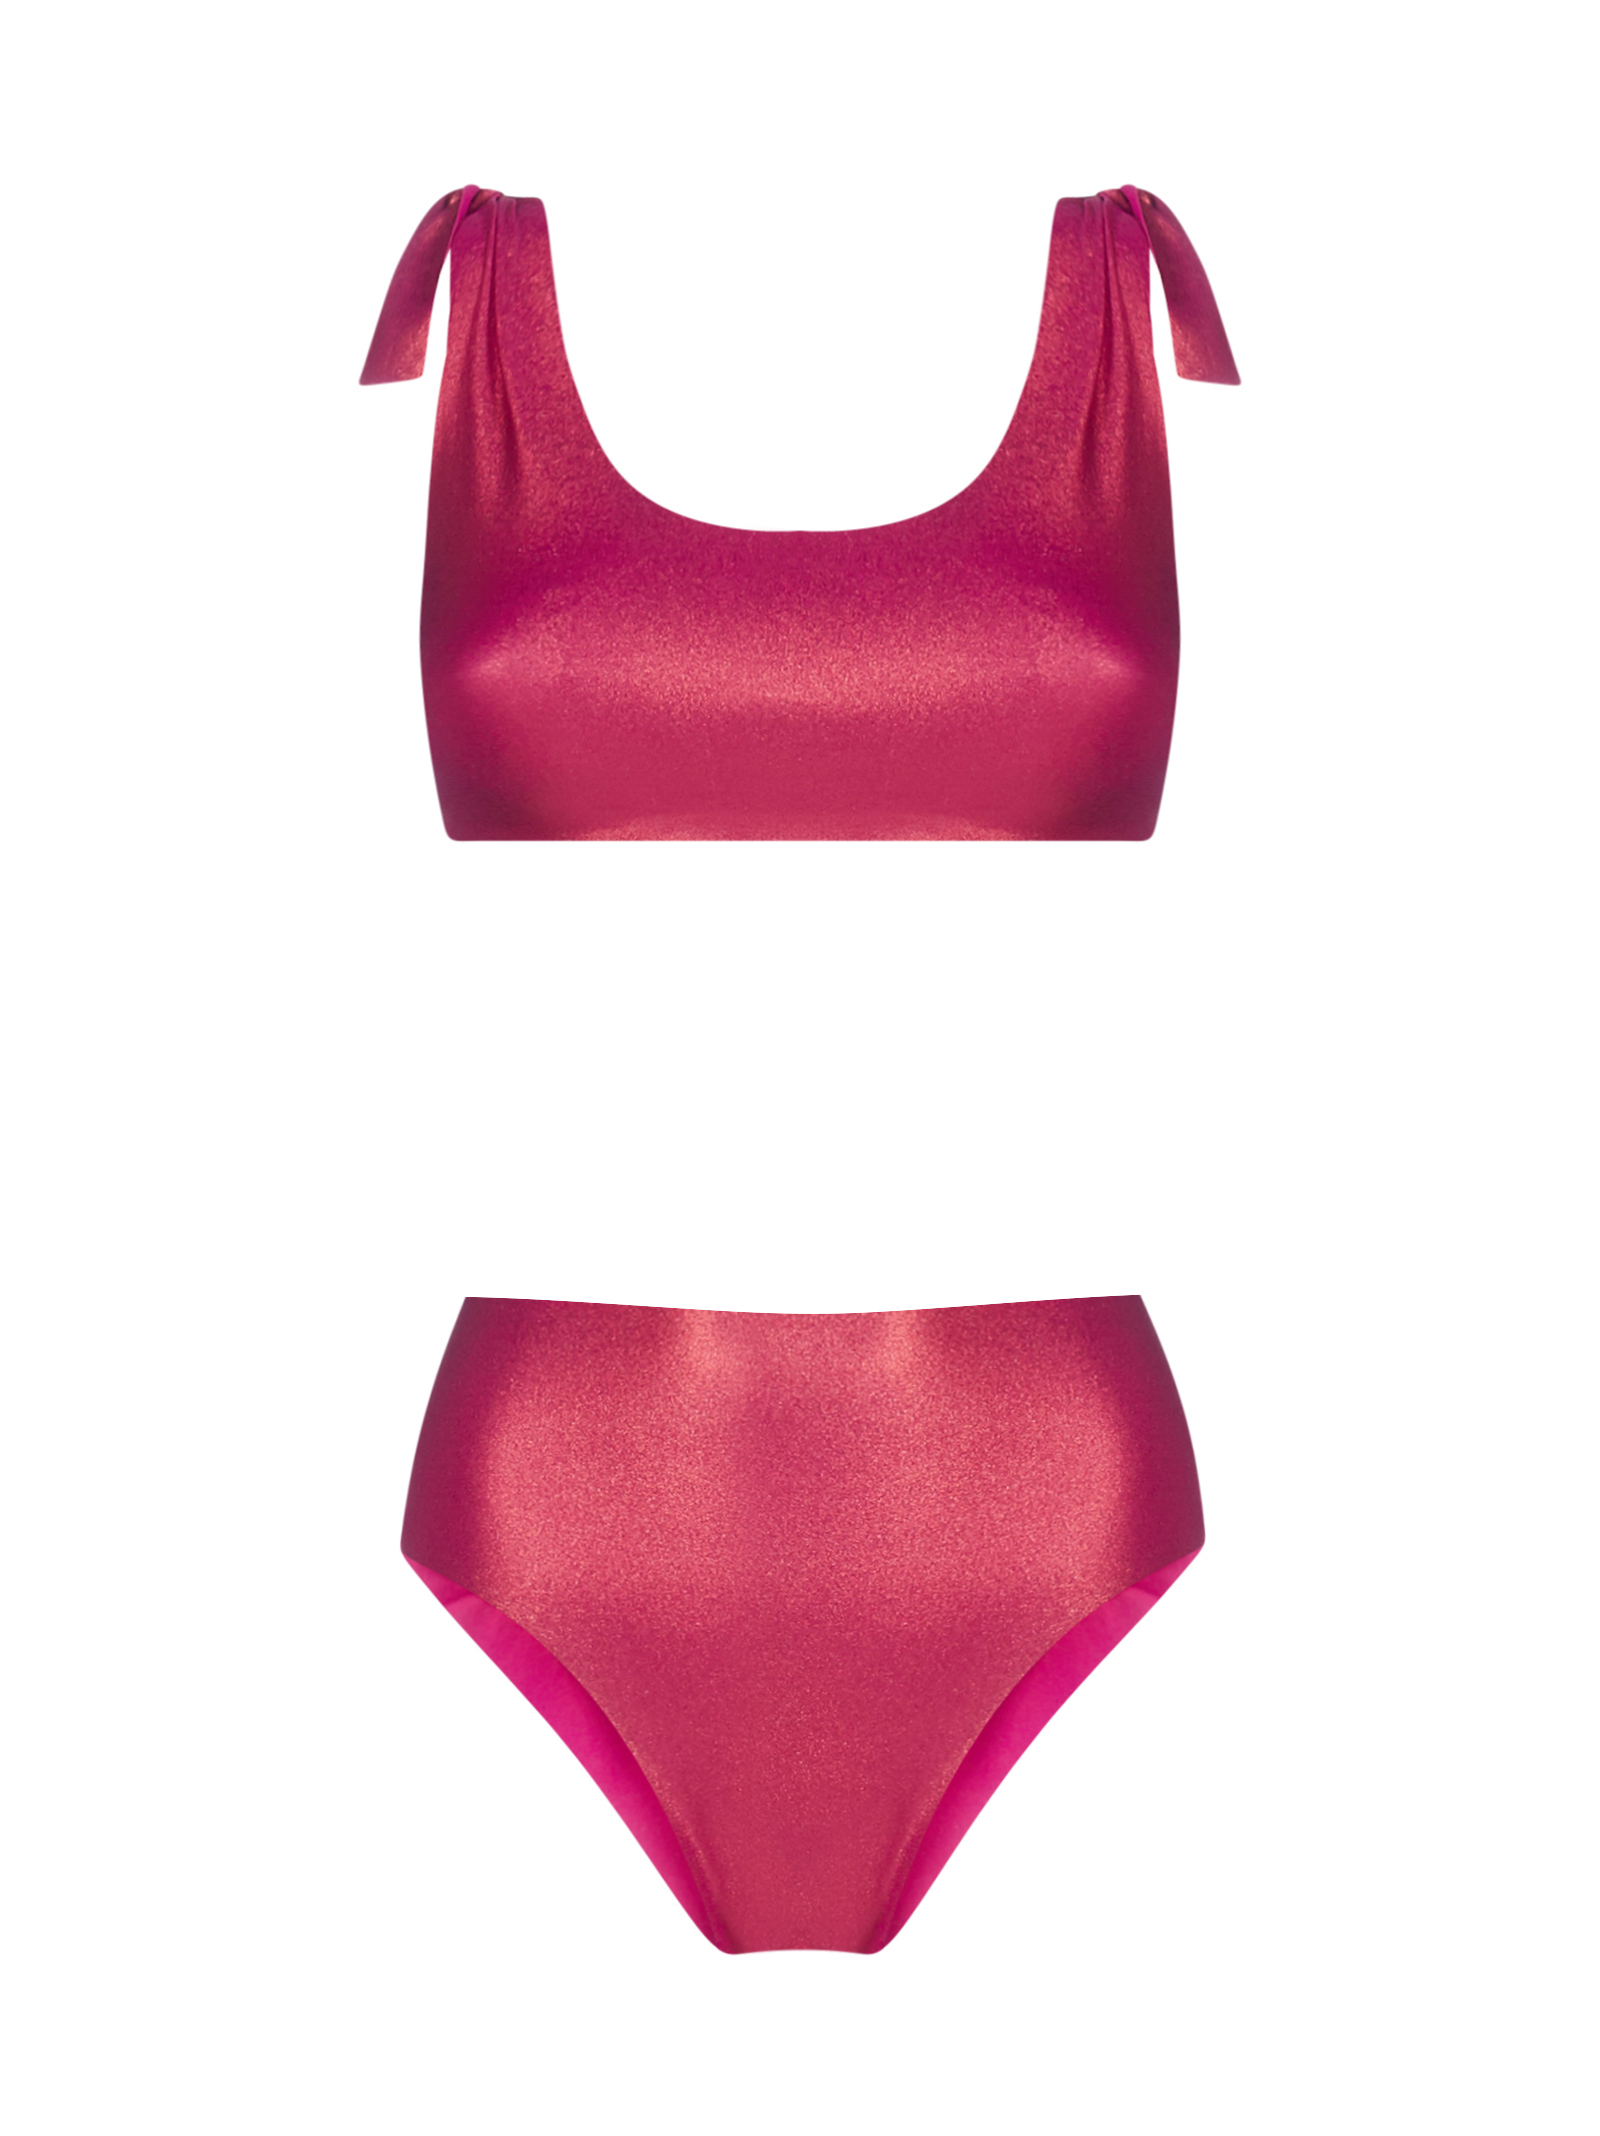 Knotting Bay Regular Fit in Red